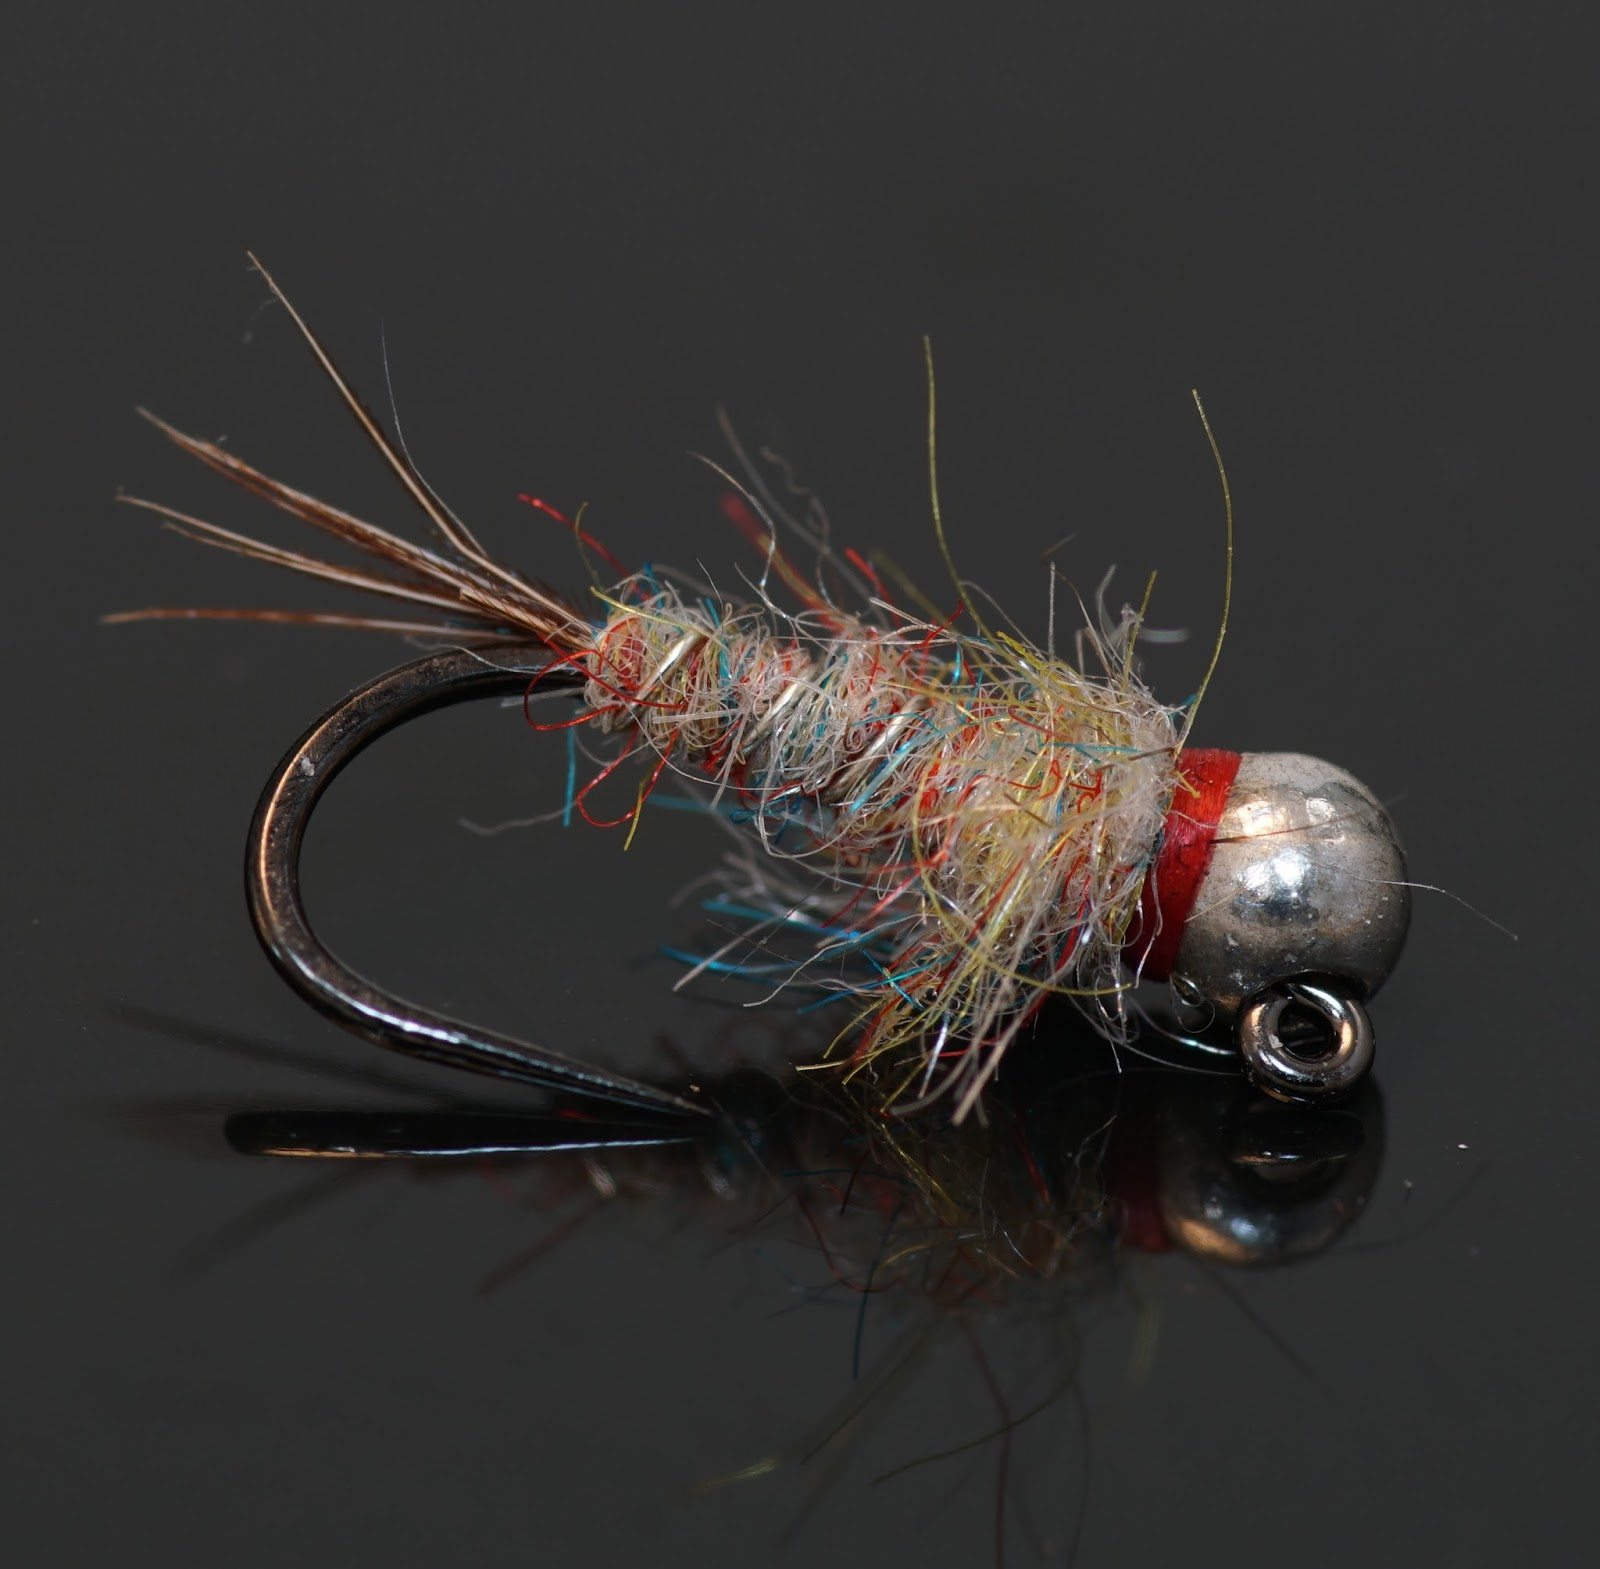 Rainbow Warrior Fly Tying Kit: Fly Fish Food -- Fly Tying And Fly Fishing